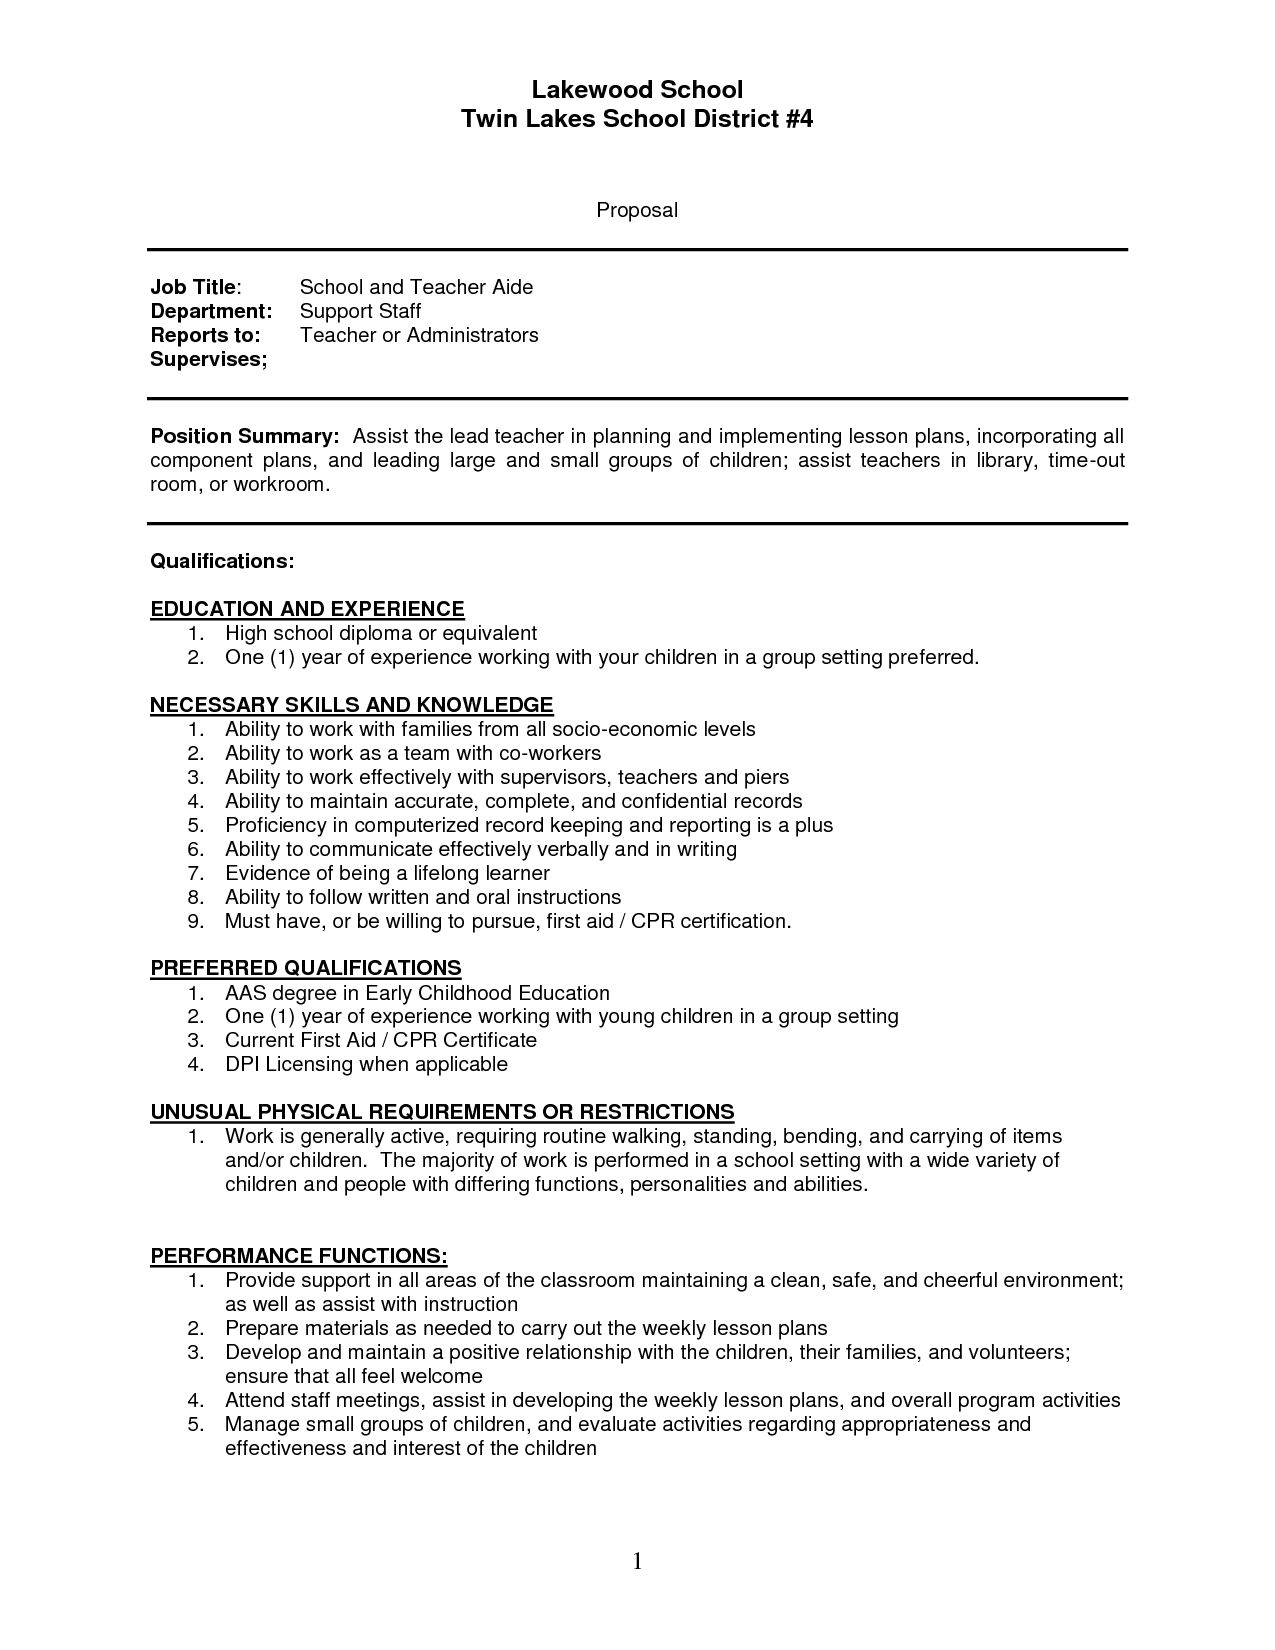 Bsa Analyst Sample Resume Endearing Sample Resume Teachers Aide Assistant Cover Letter Teacher Sap .